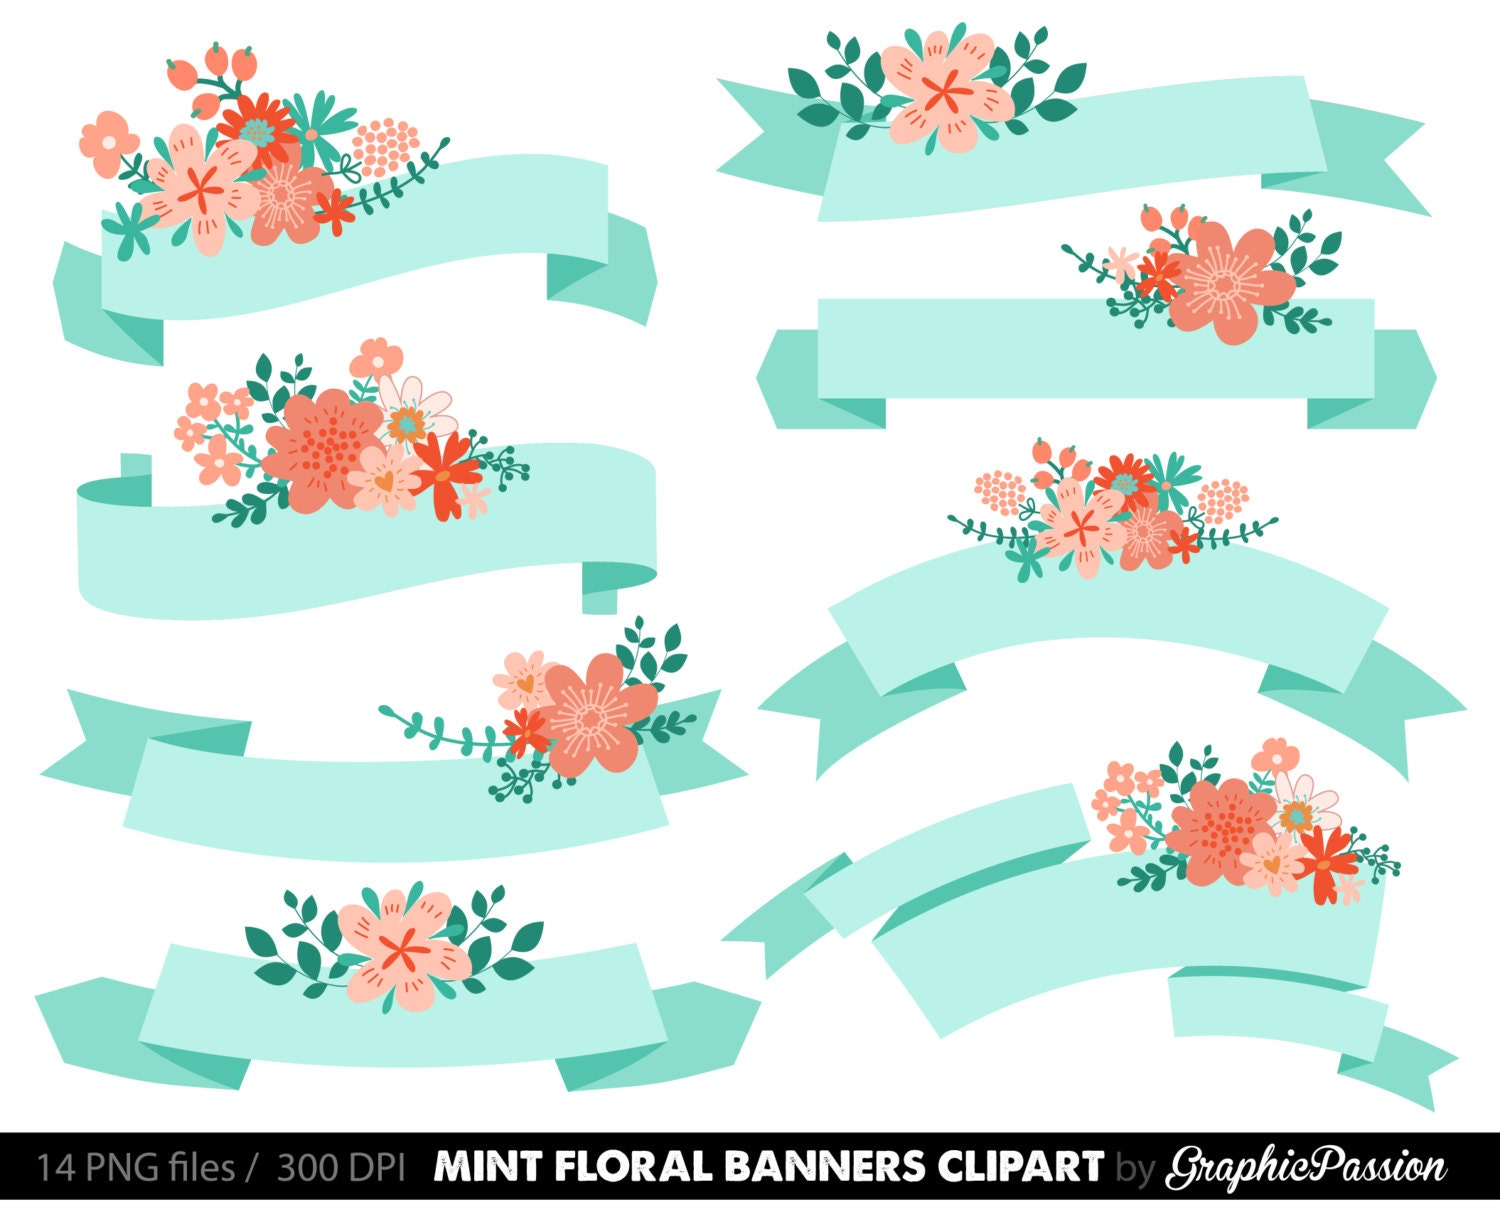 Digital Floral Banners Clipart Mint Digital Wedding Floral Clip Art ...